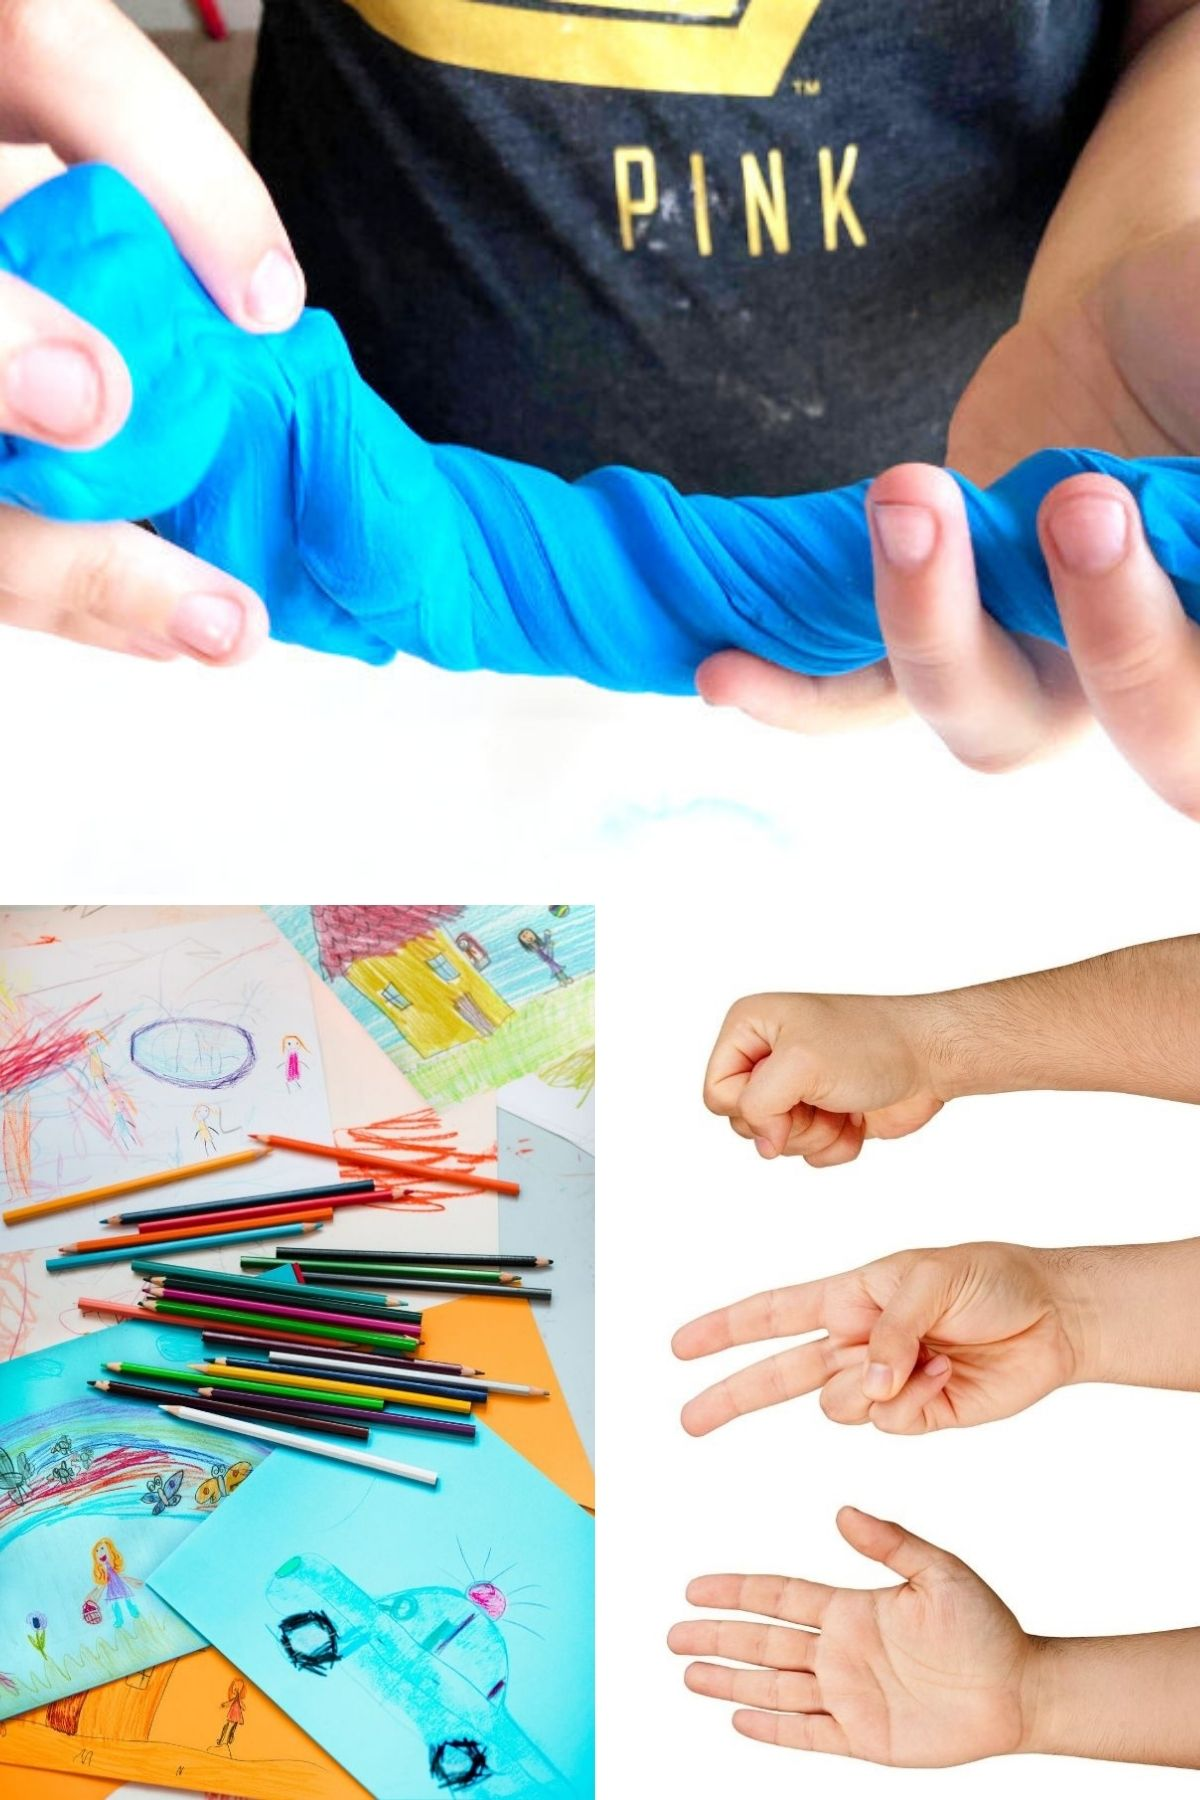 22 indoor activities for kids photo collage promotional image